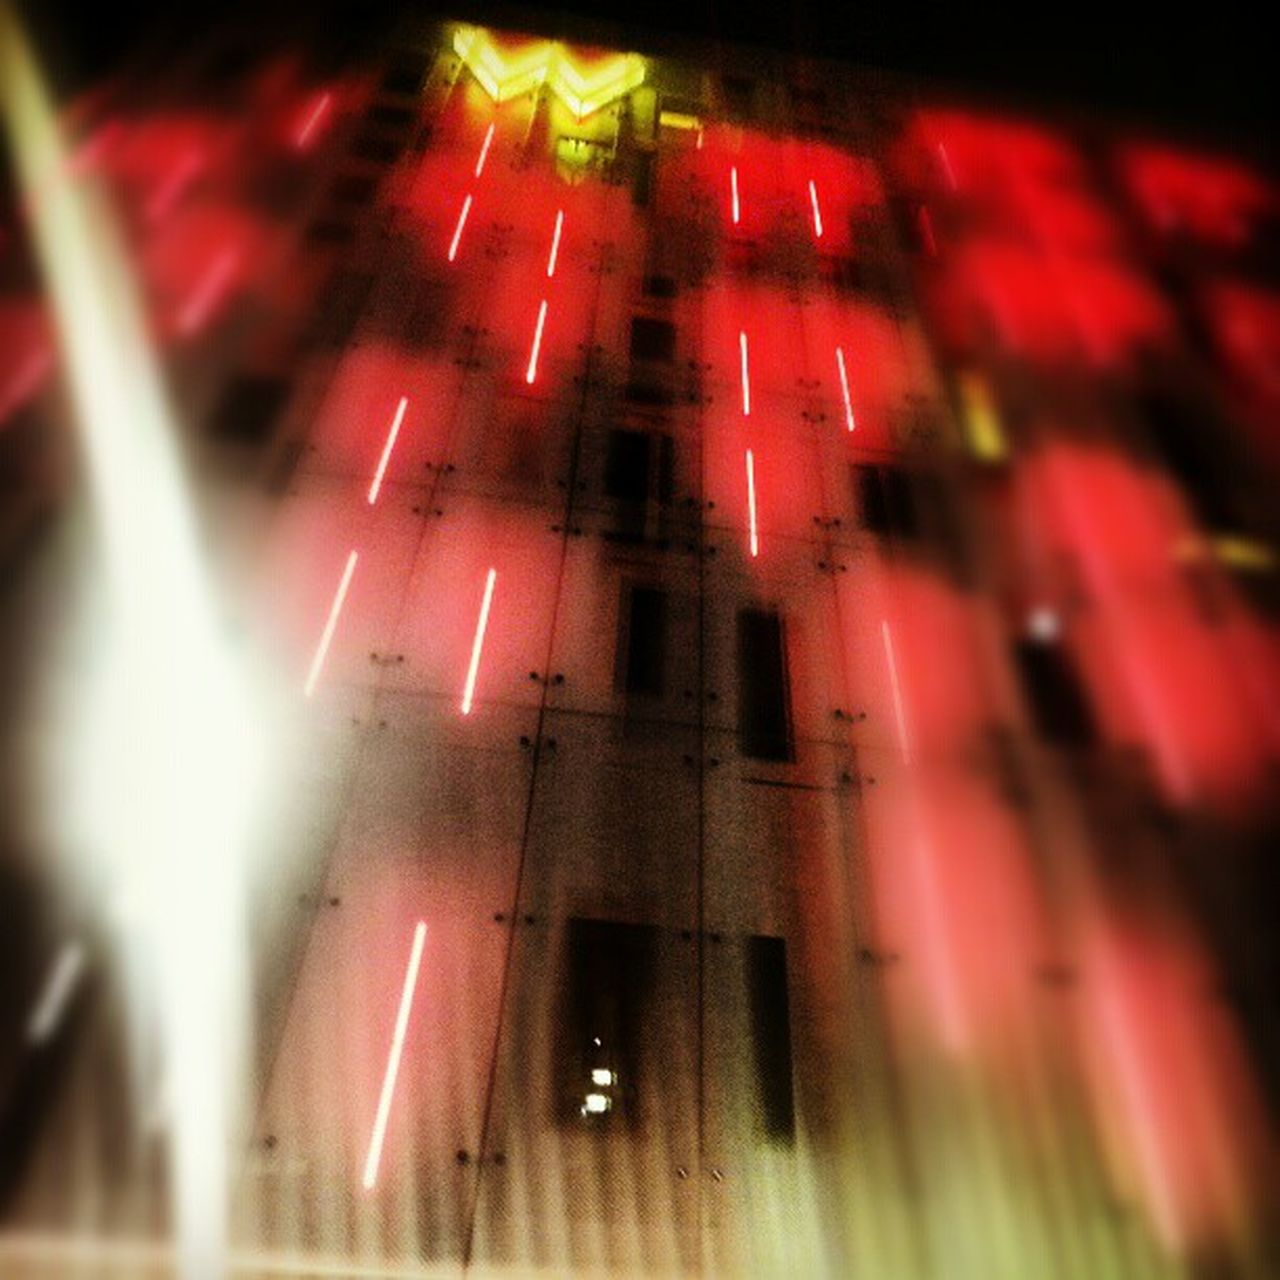 night, illuminated, red, no people, indoors, architecture, close-up